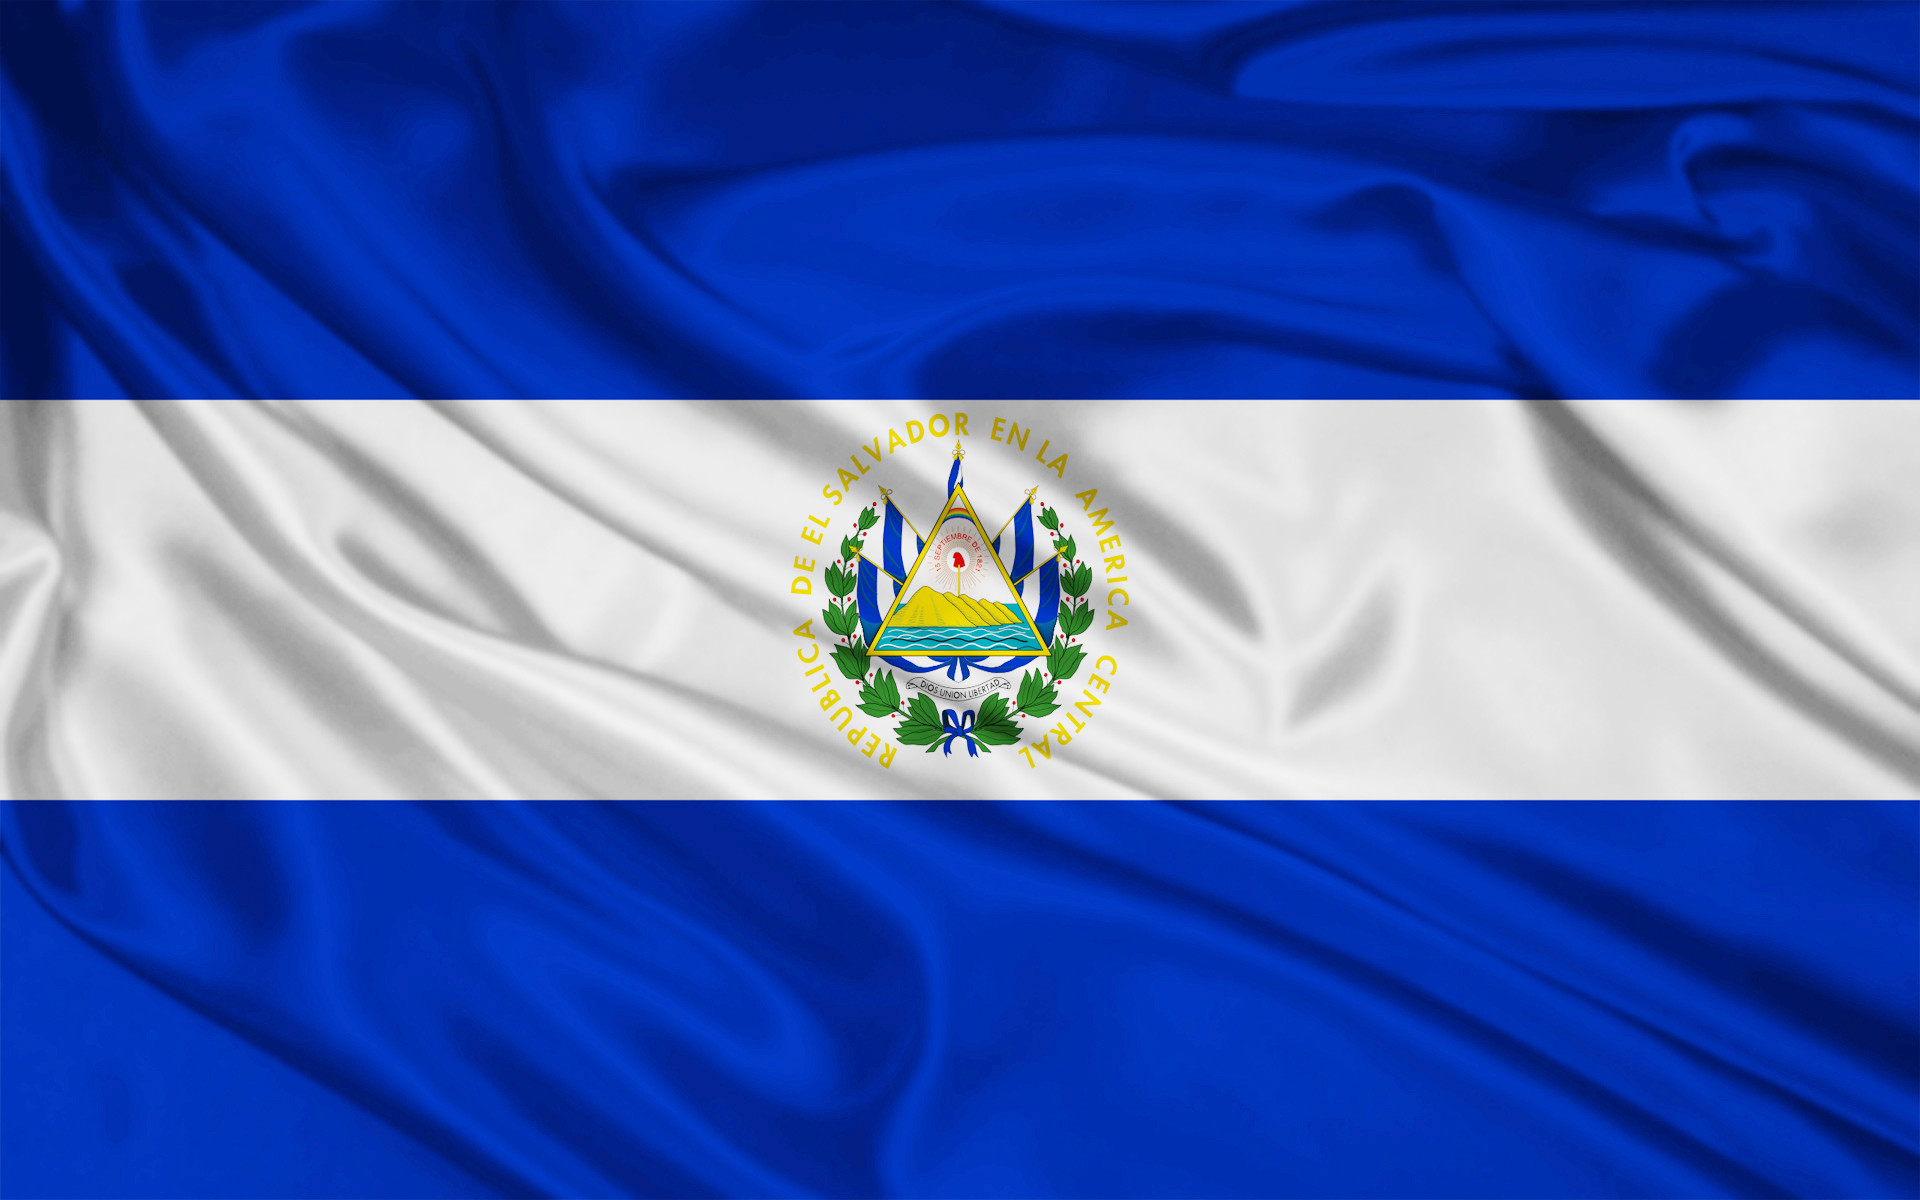 1920x1200 Bild: El Salvador Flagge wallpapers and stock photos. Â«